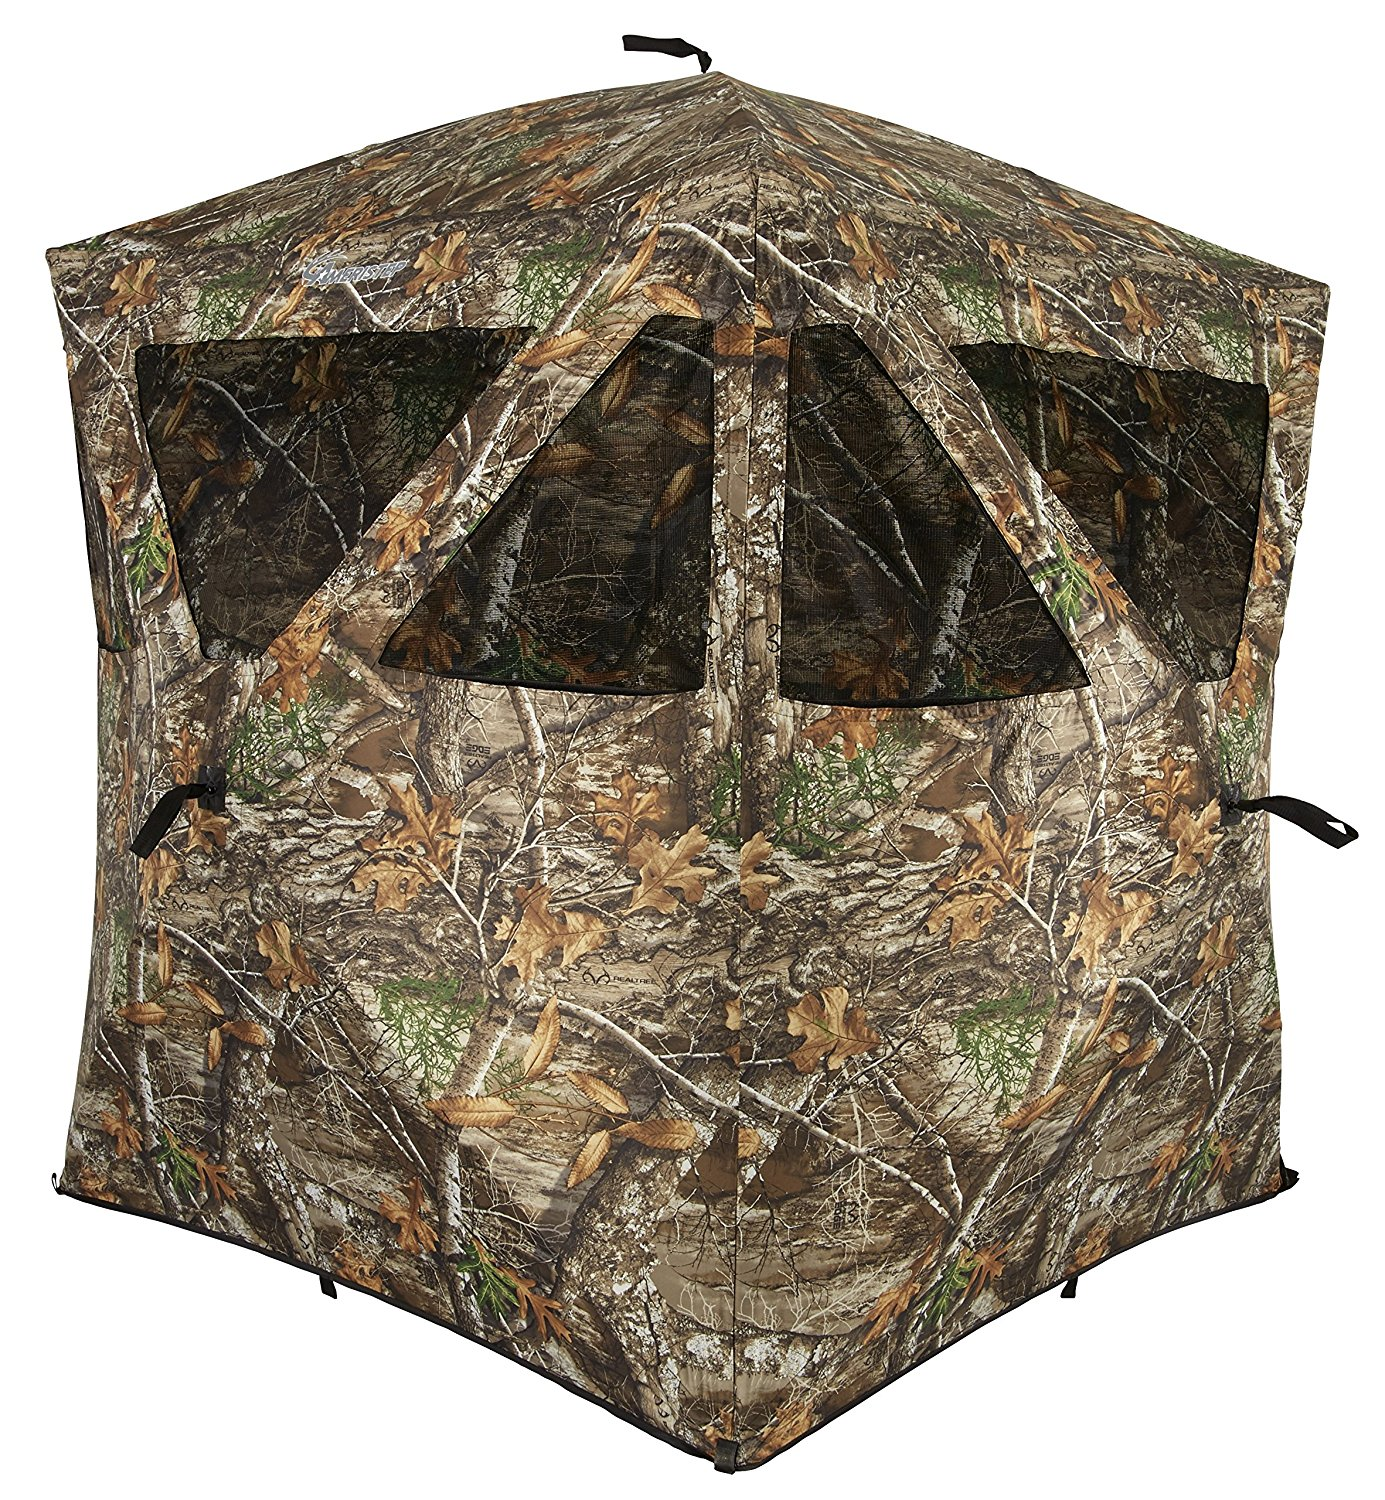 Camouflage blind for bow, gun, or crossbow hunting.